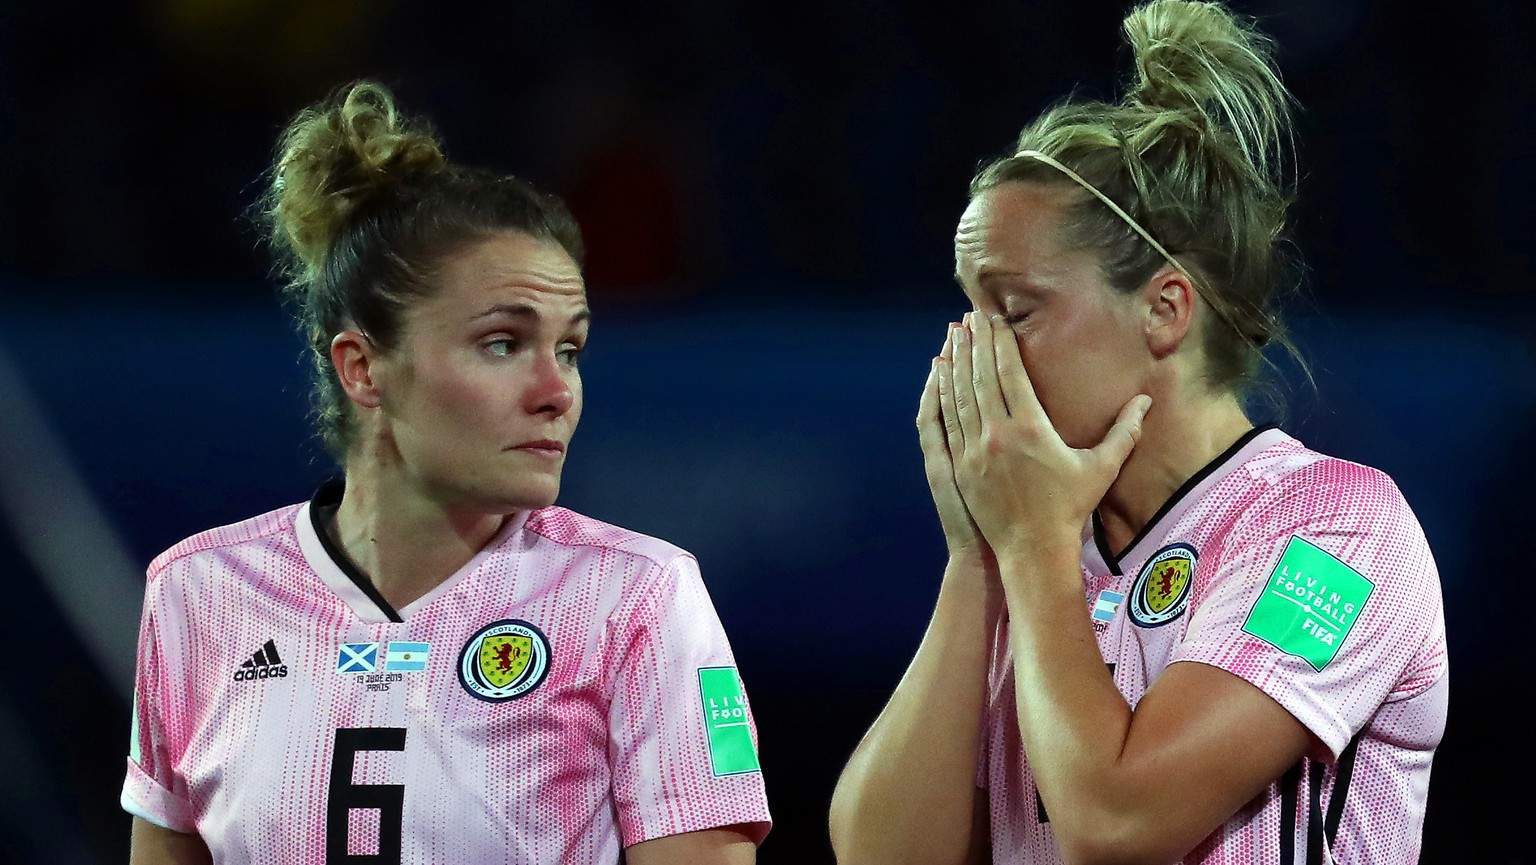 epa07658938 Scotland players Jo Love (L) and Joelle Murray (R) react after the FIFA Women's World Cup 2019 group D soccer match between Scotland and Argentina in Paris, France, 19 June 2019.  EPA/SRDJAN SUKI